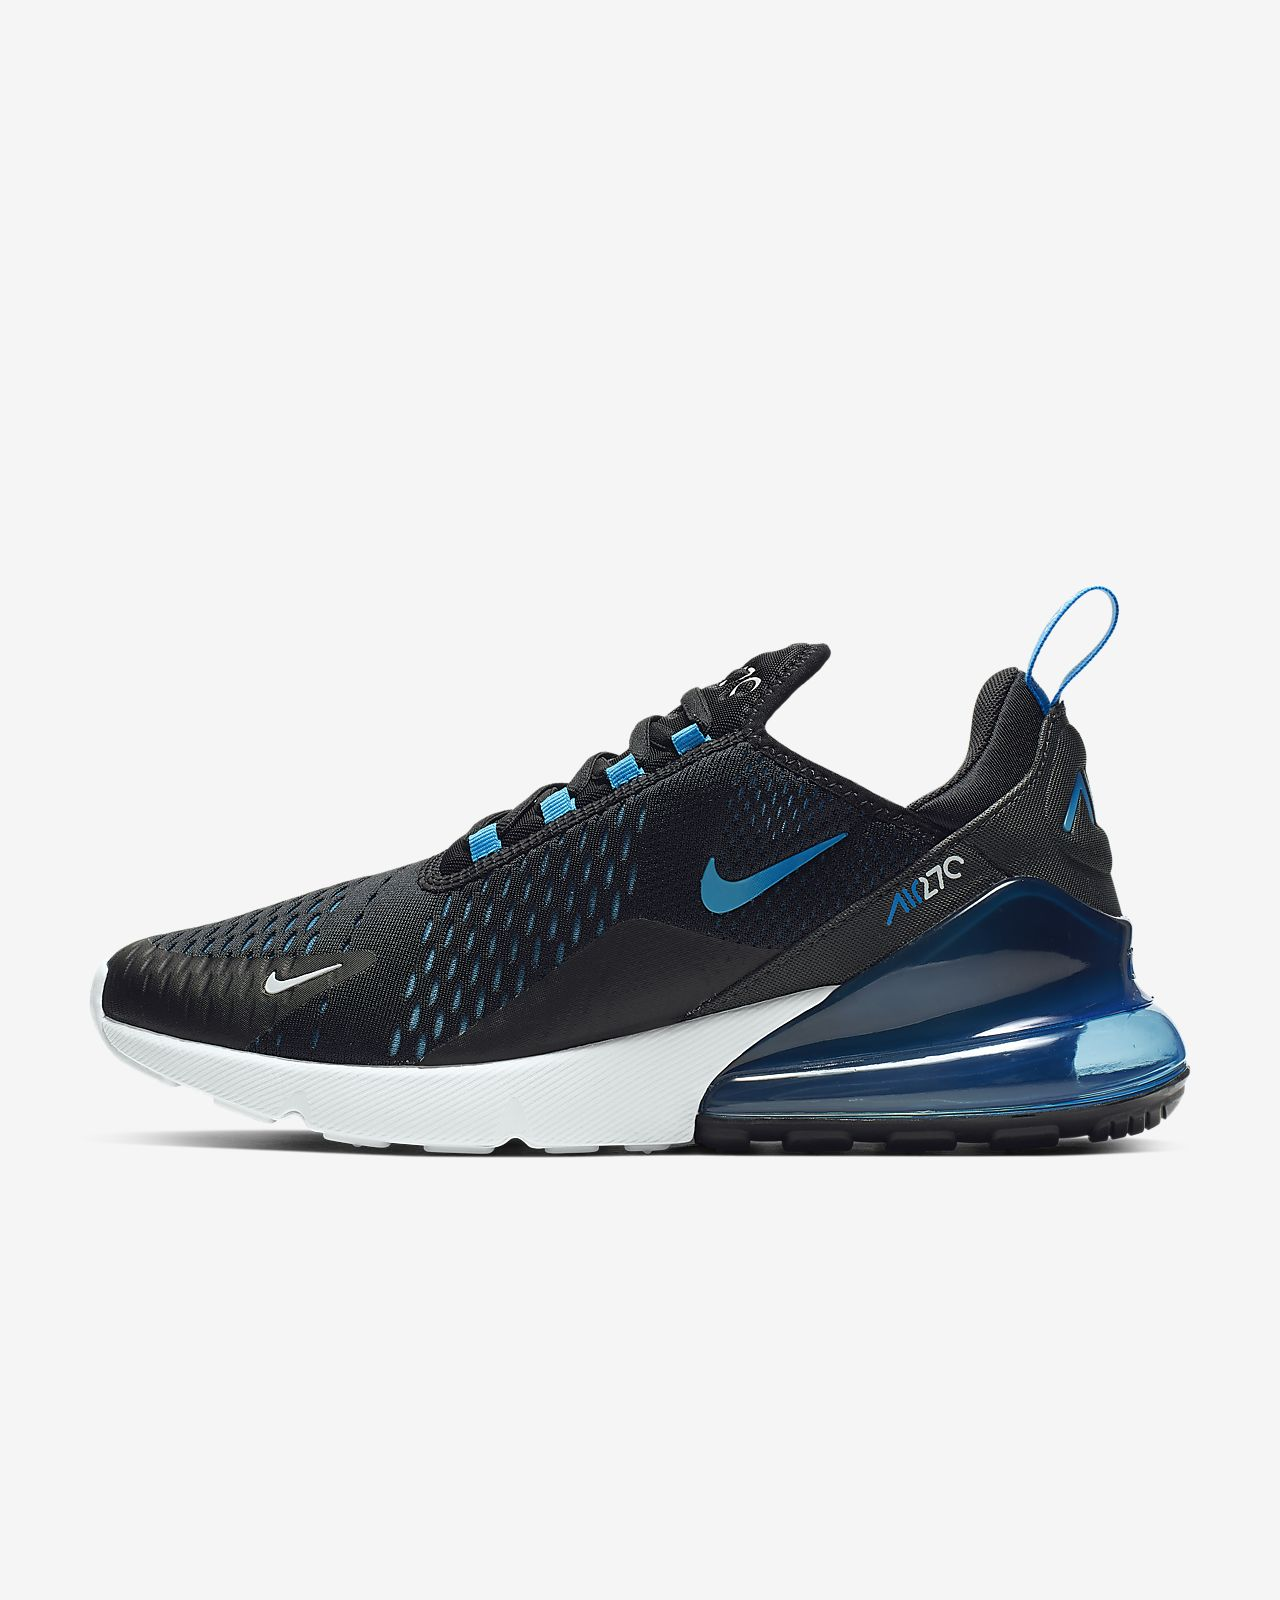 meet 58373 b1b94 Men s Shoe. Nike Air Max 270